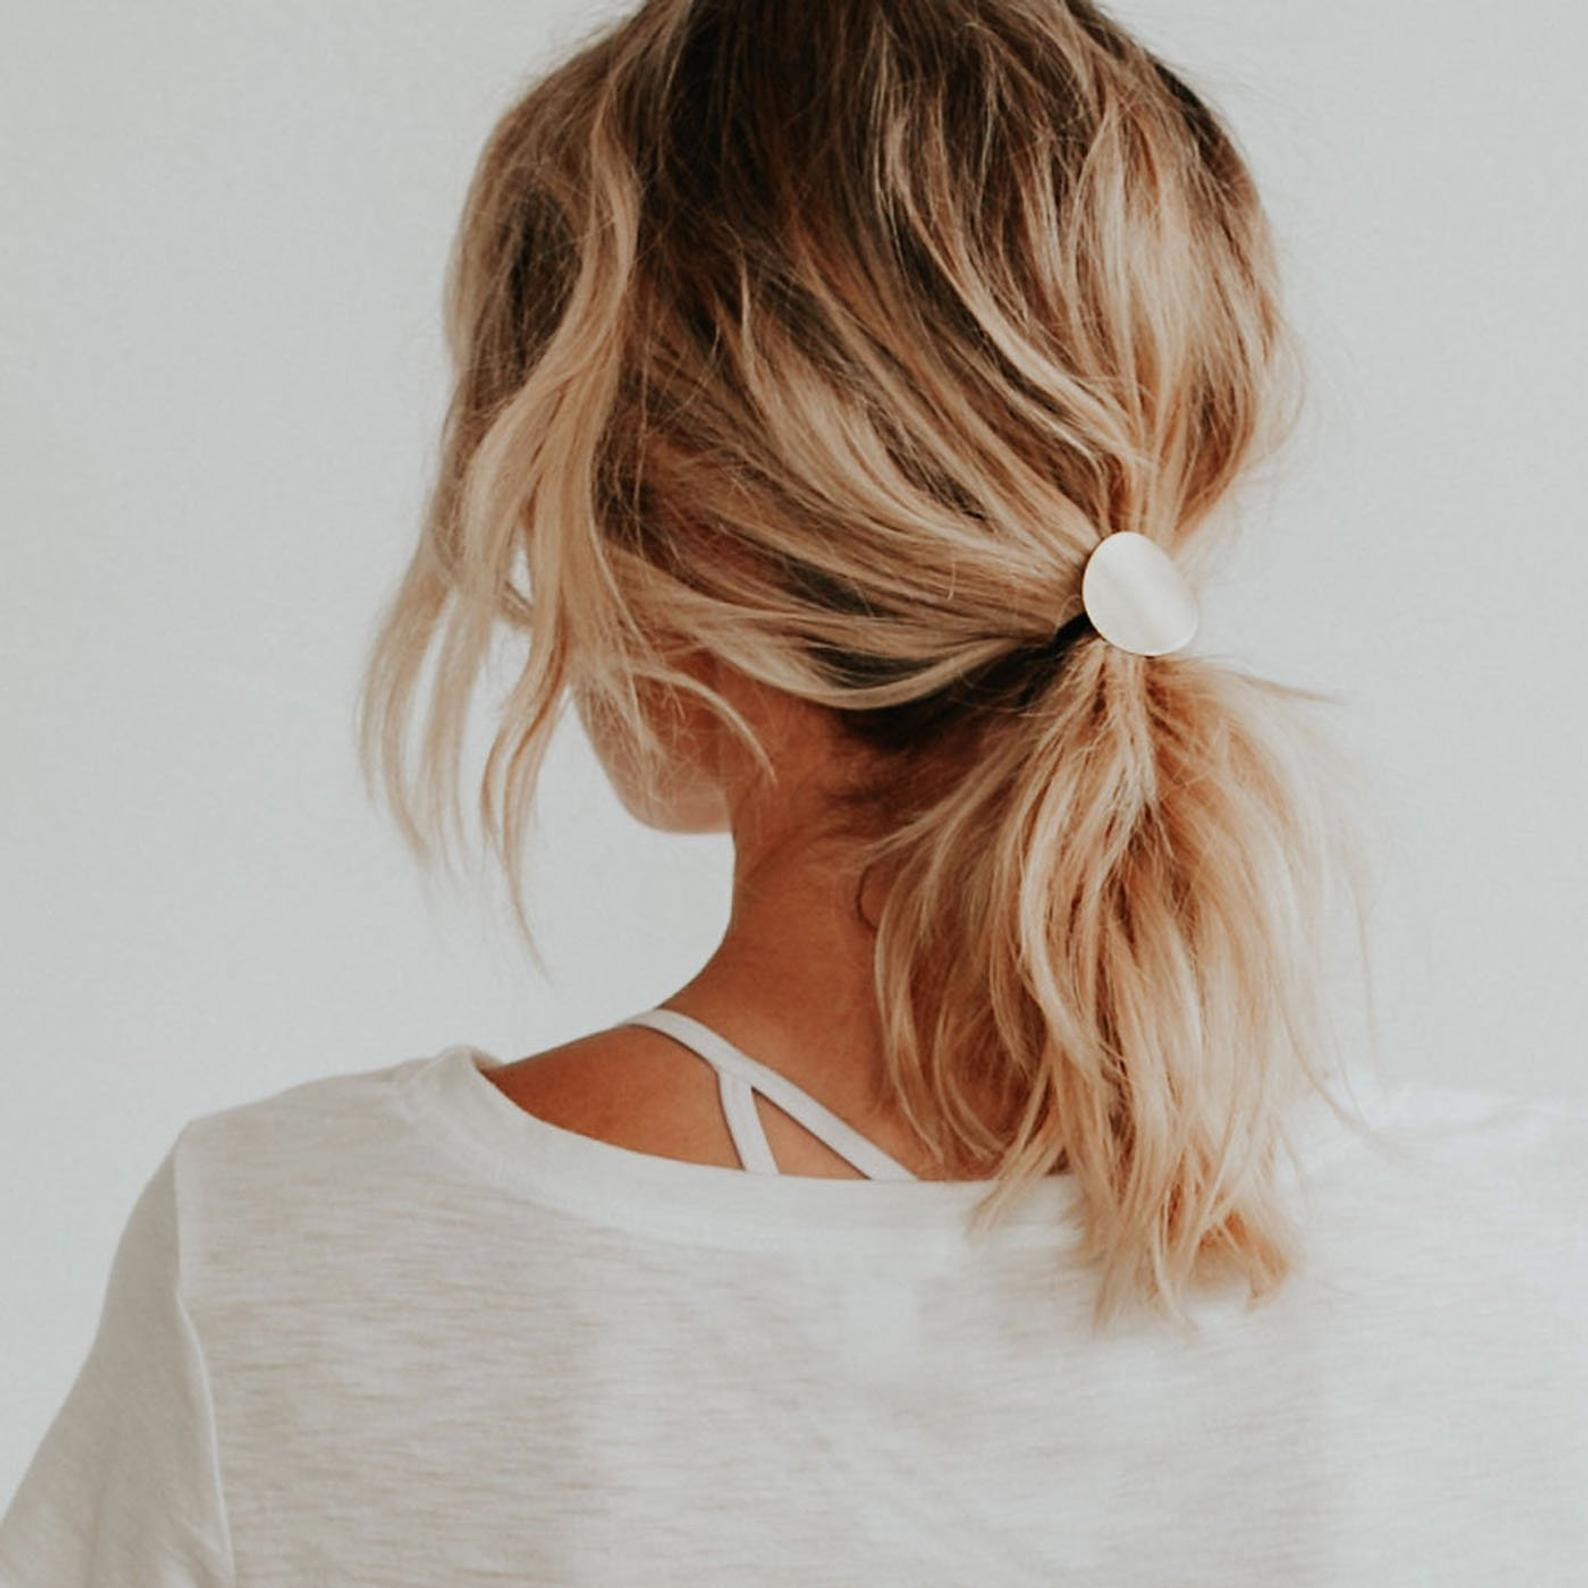 15 Shoulder Length Hairstyles To Rock This Fall